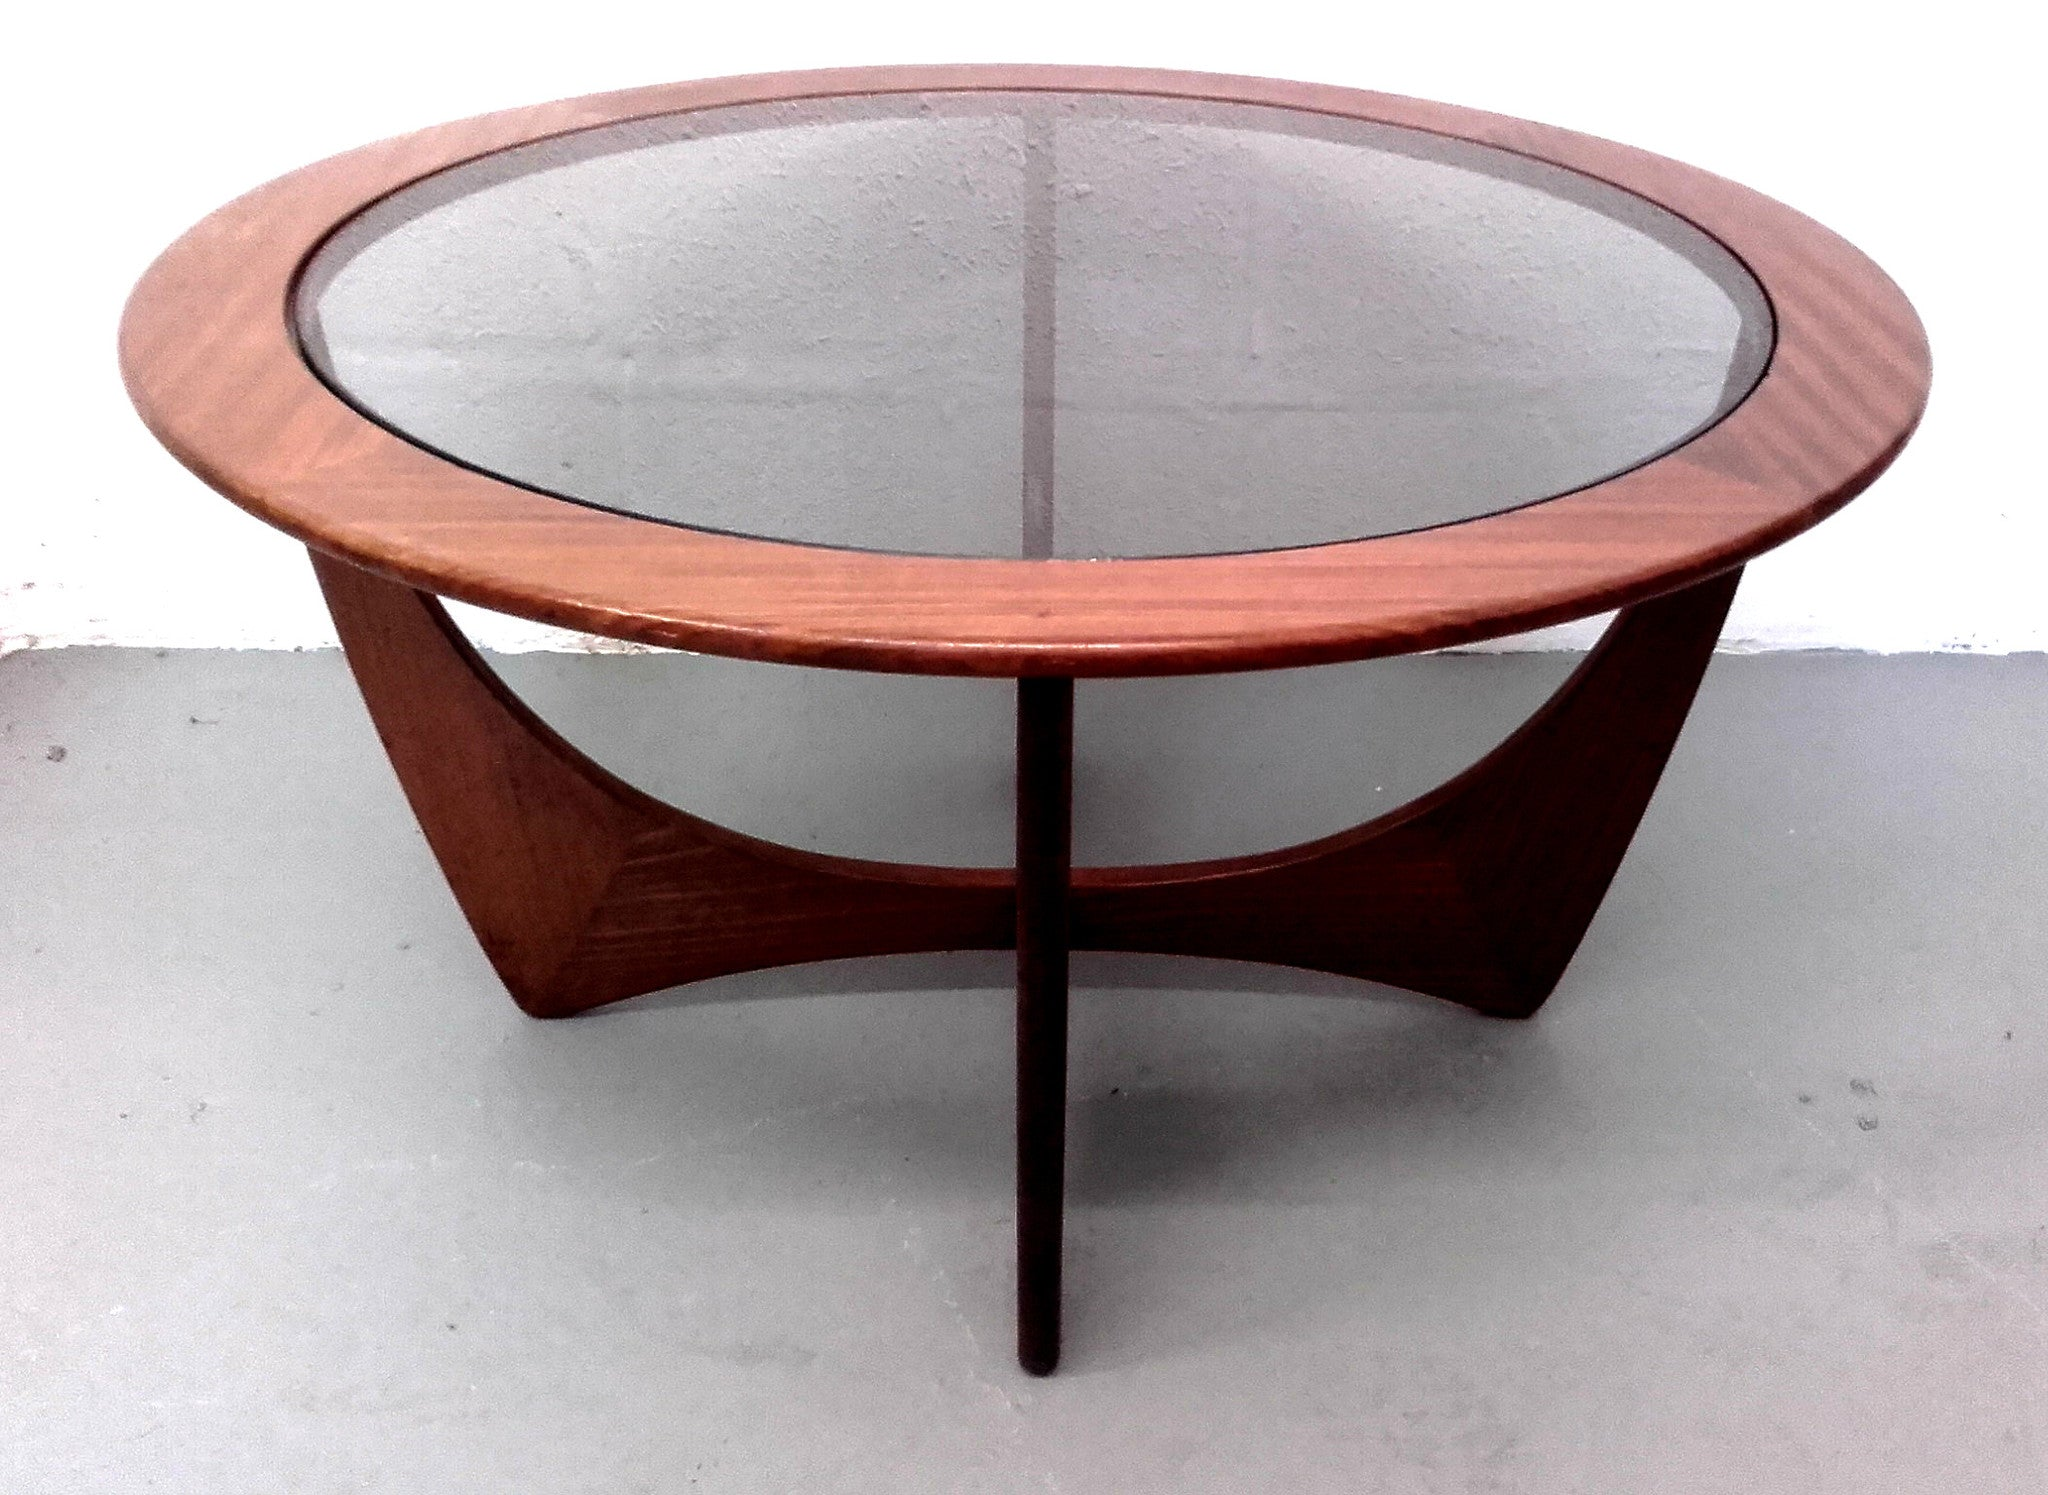 Iconic g plan astro teak and smoked glass coffee table whittaker iconic g plan astro teak and smoked glass coffee table geotapseo Choice Image